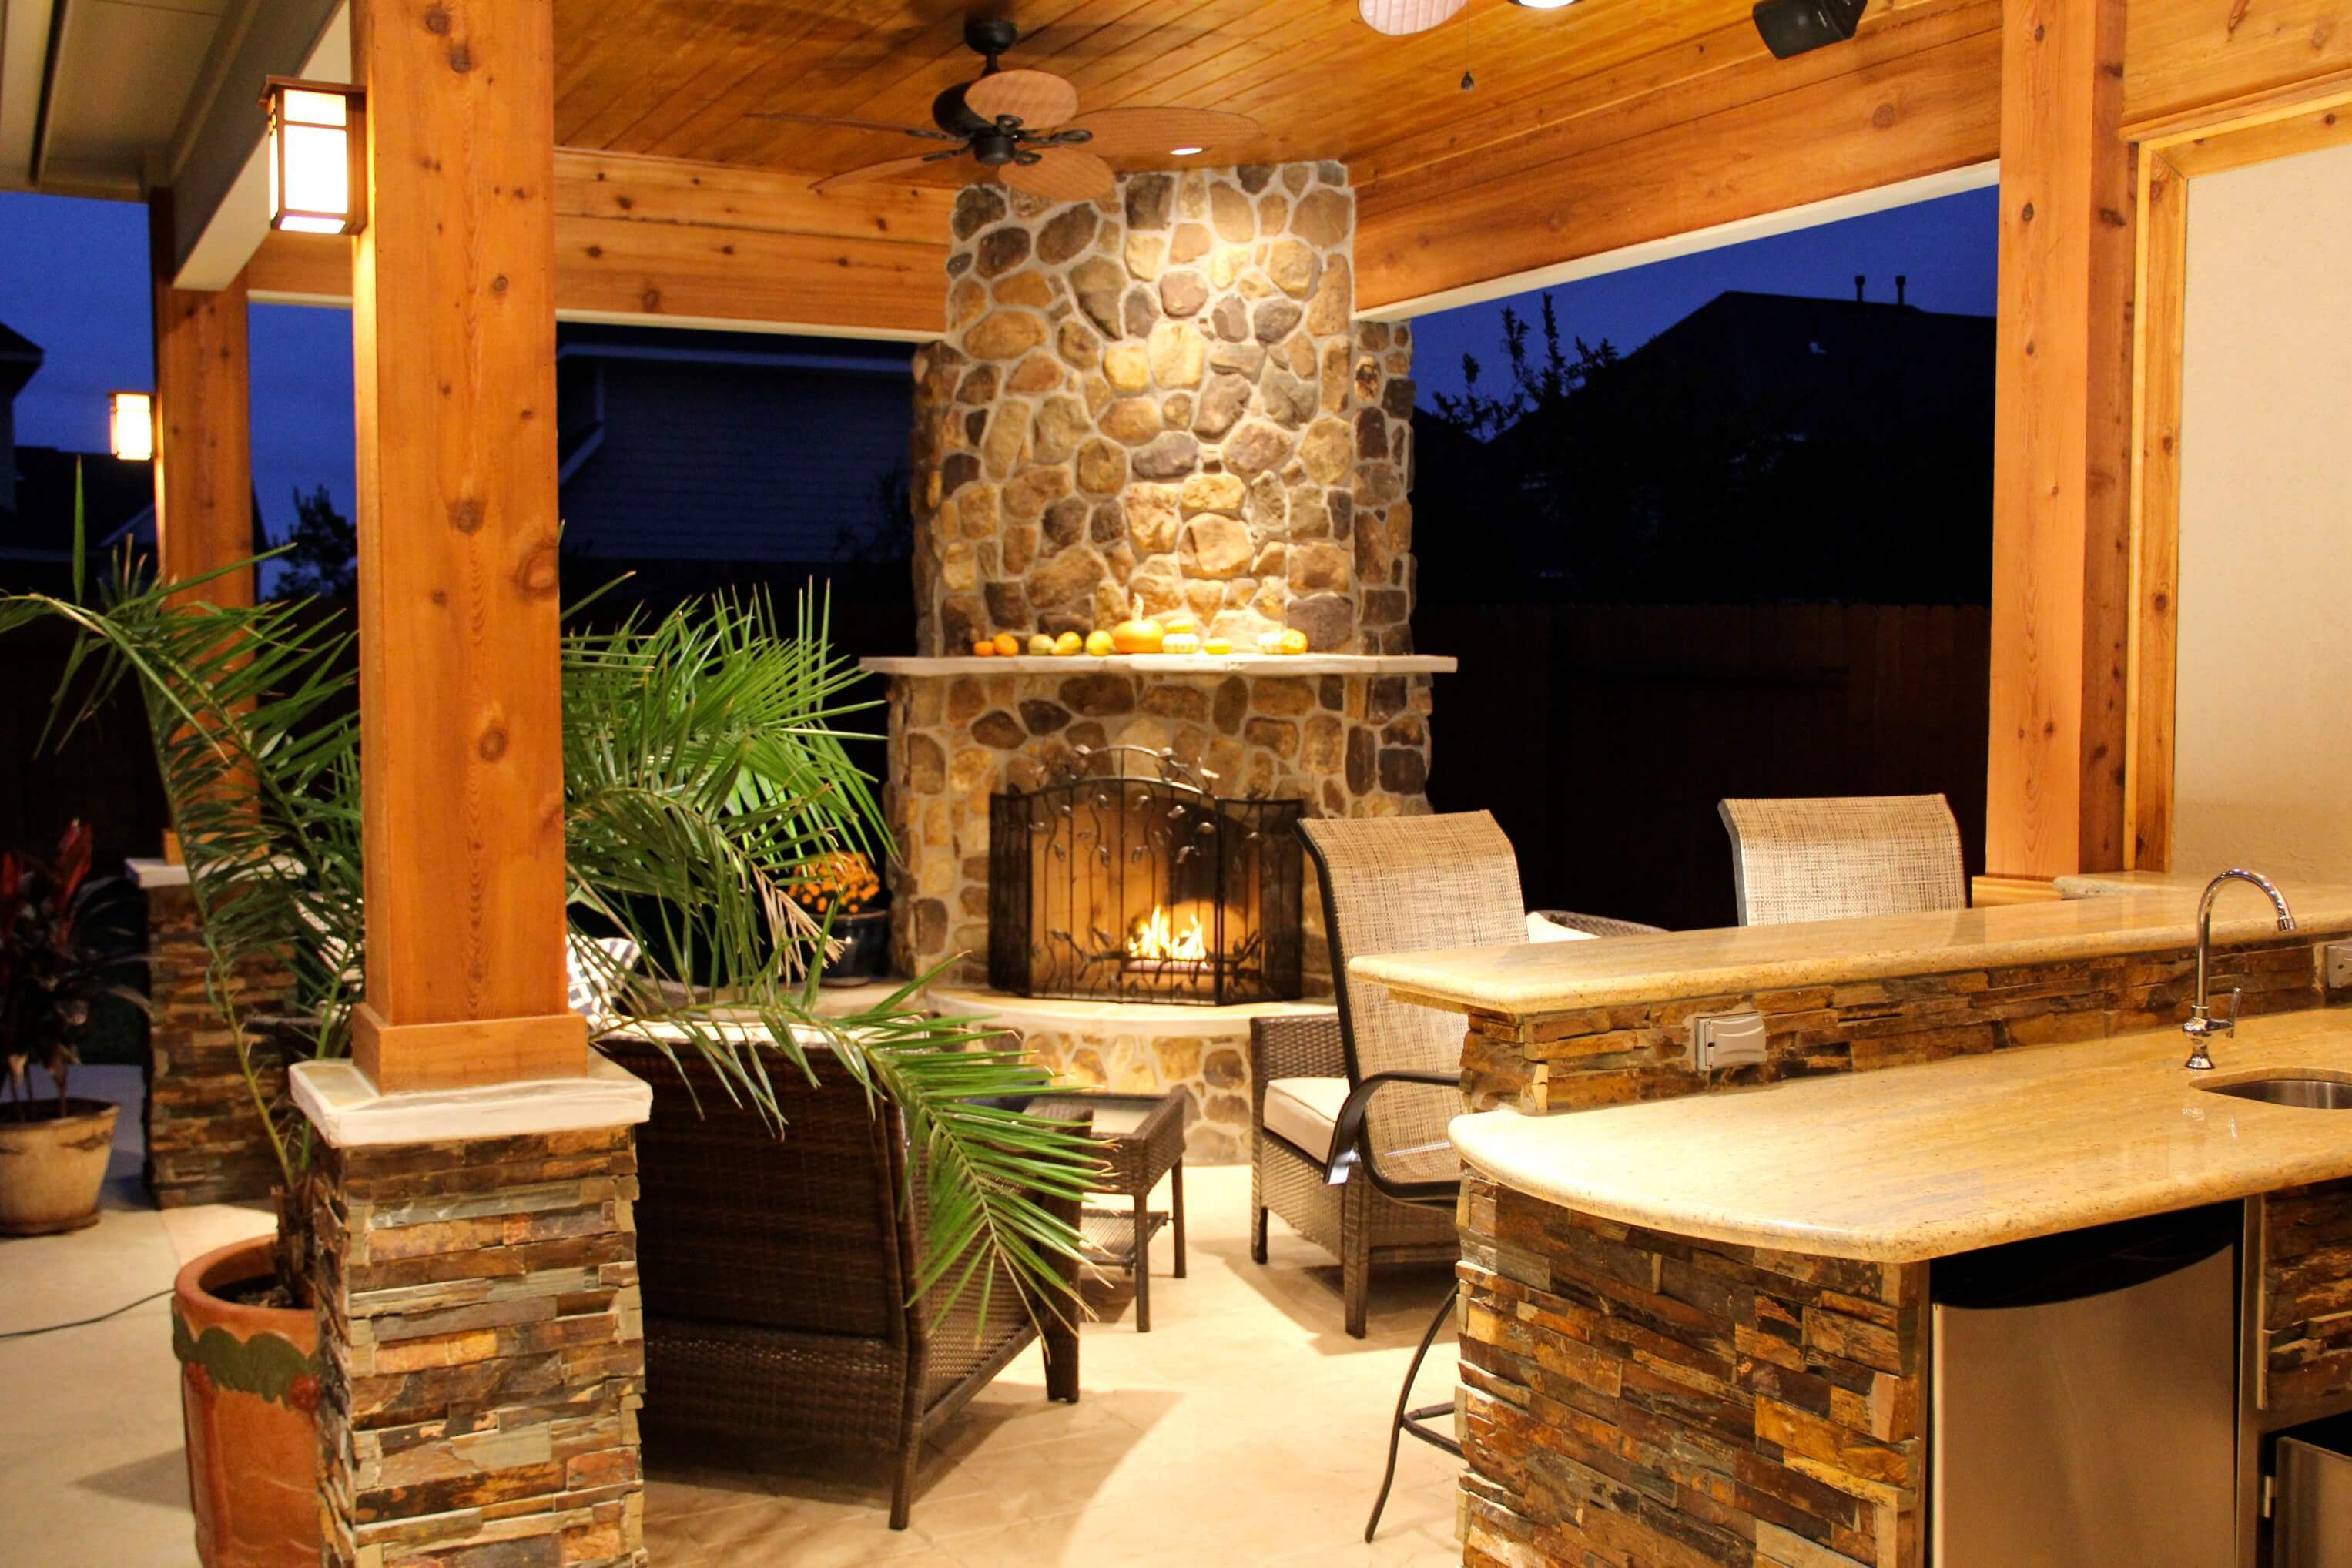 Patio Cover With Fireplace & Kitchen In Firethorne - Texas ... on Outdoor Kitchen And Fireplace Ideas id=70334